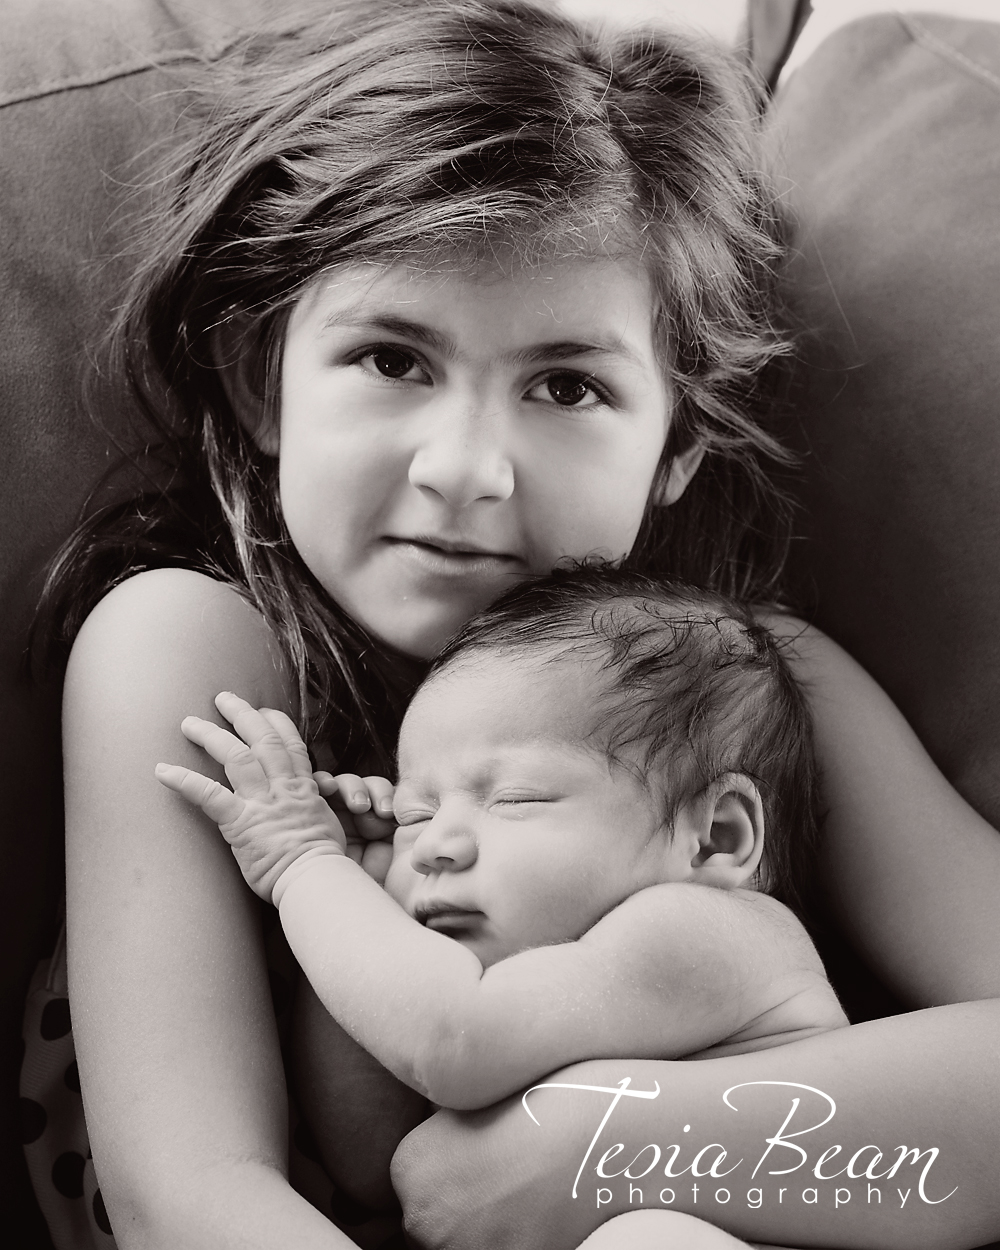 Gorgeous black and white newborn and big sister (c)Tesiabeamphotography.com